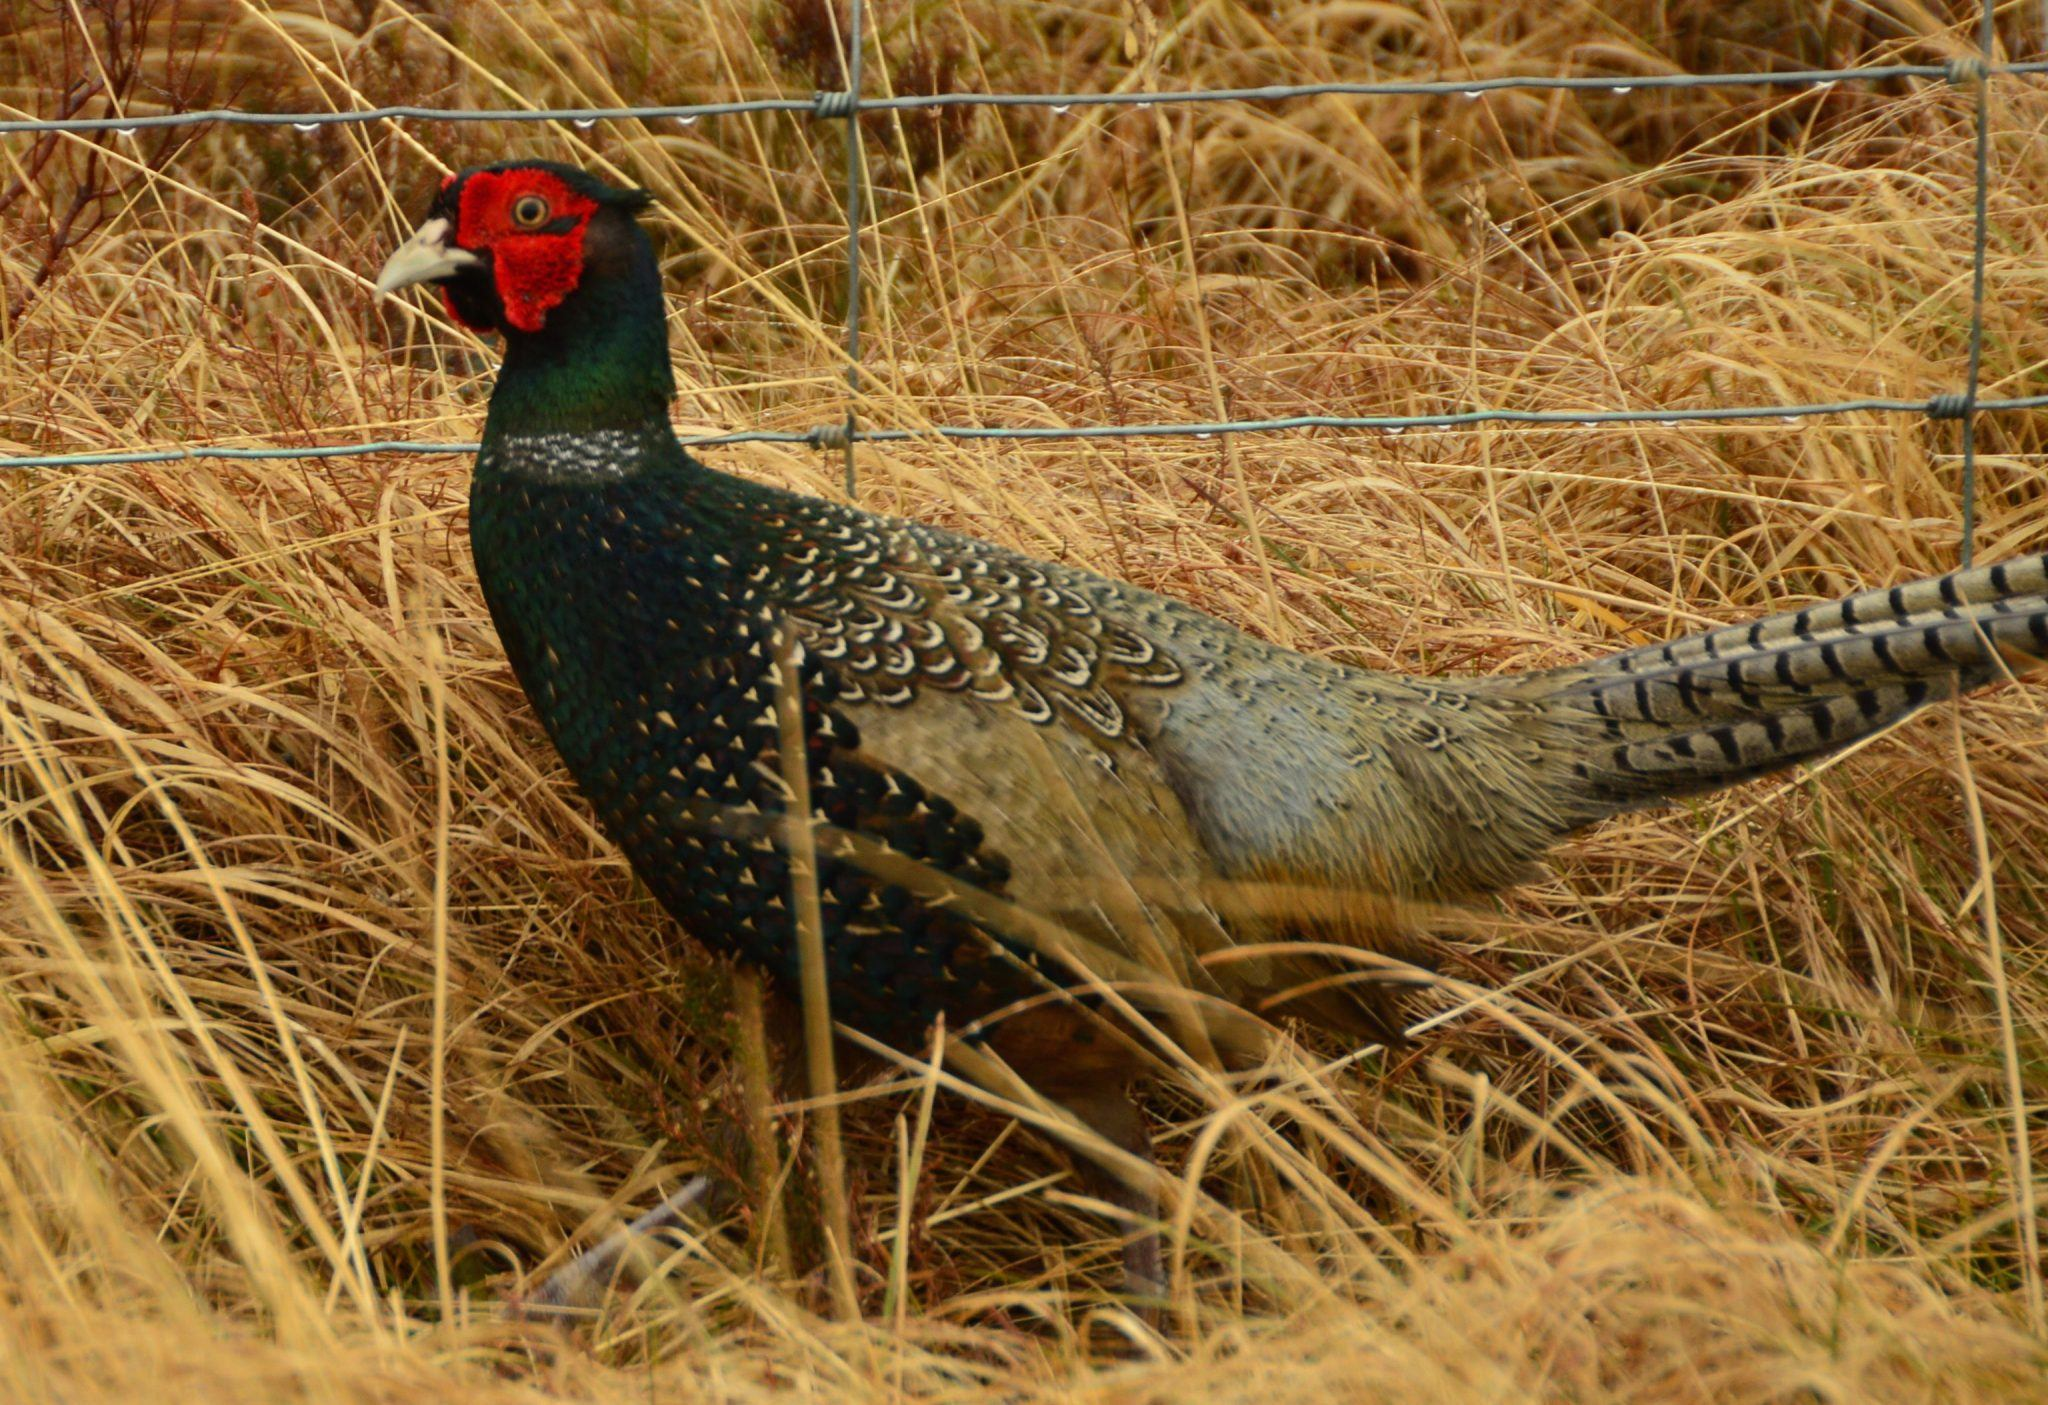 Pheasant bird in hay in Scotland